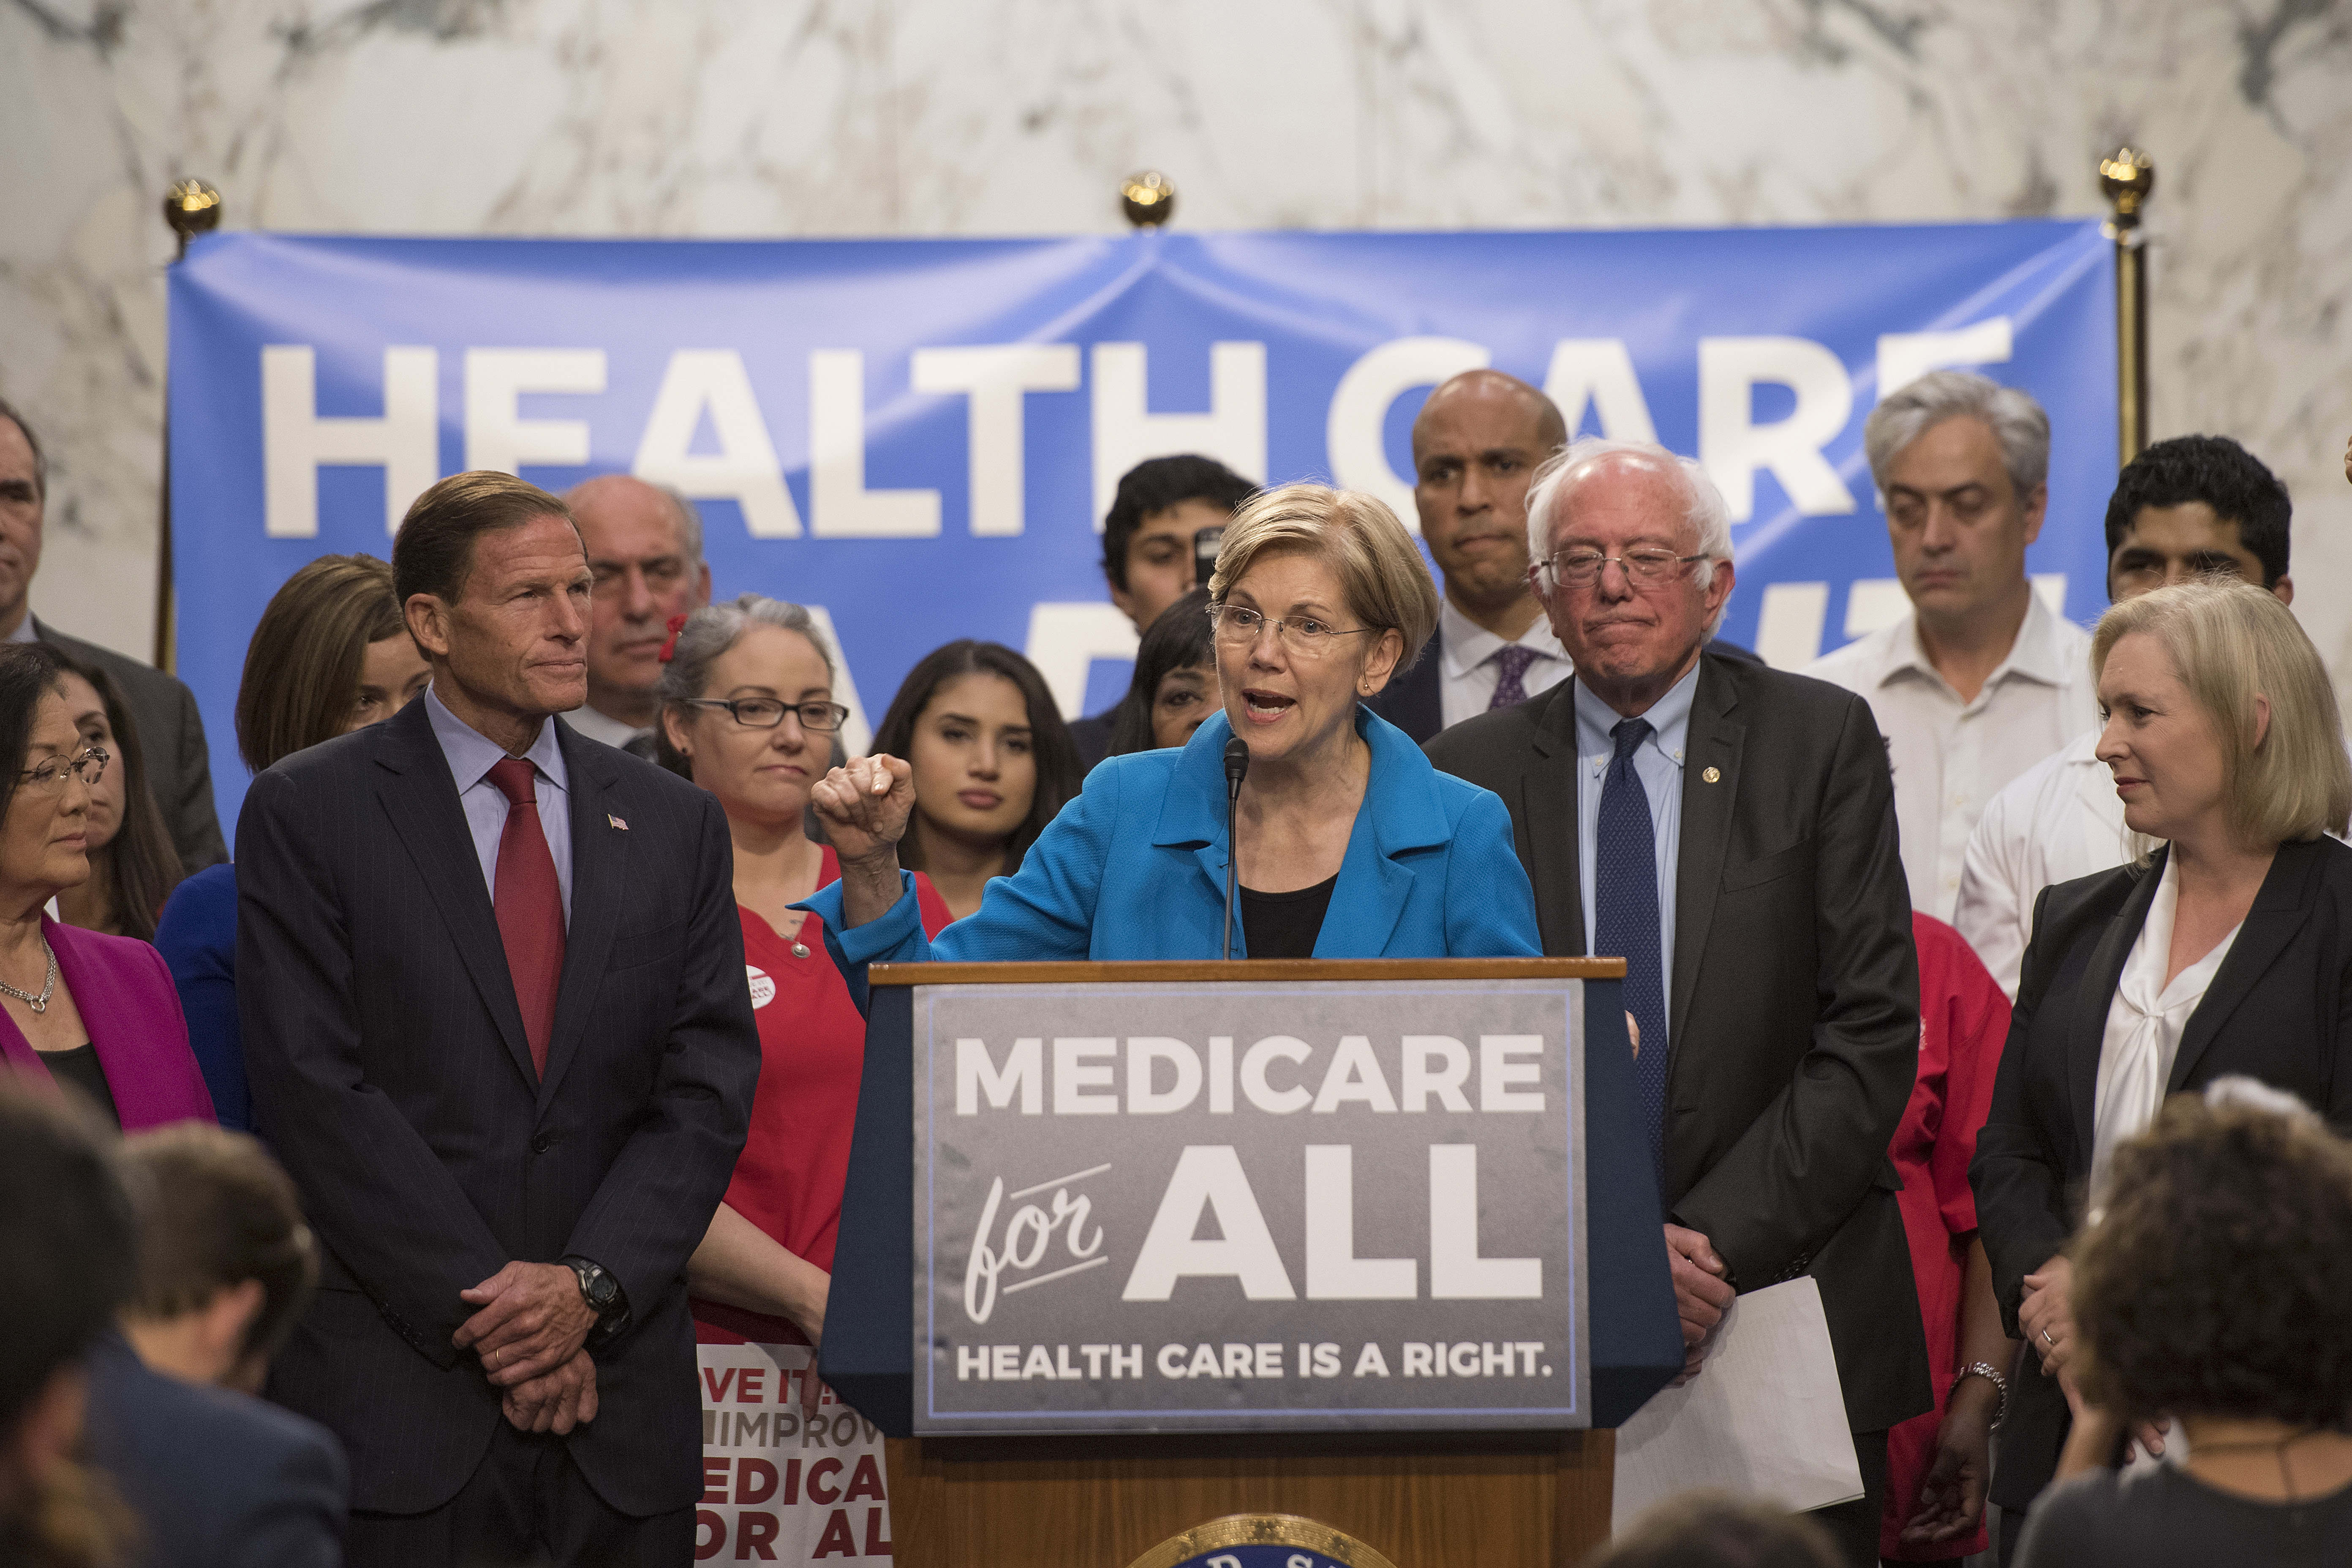 Investors are shrugging off fear of Medicare for All – for now